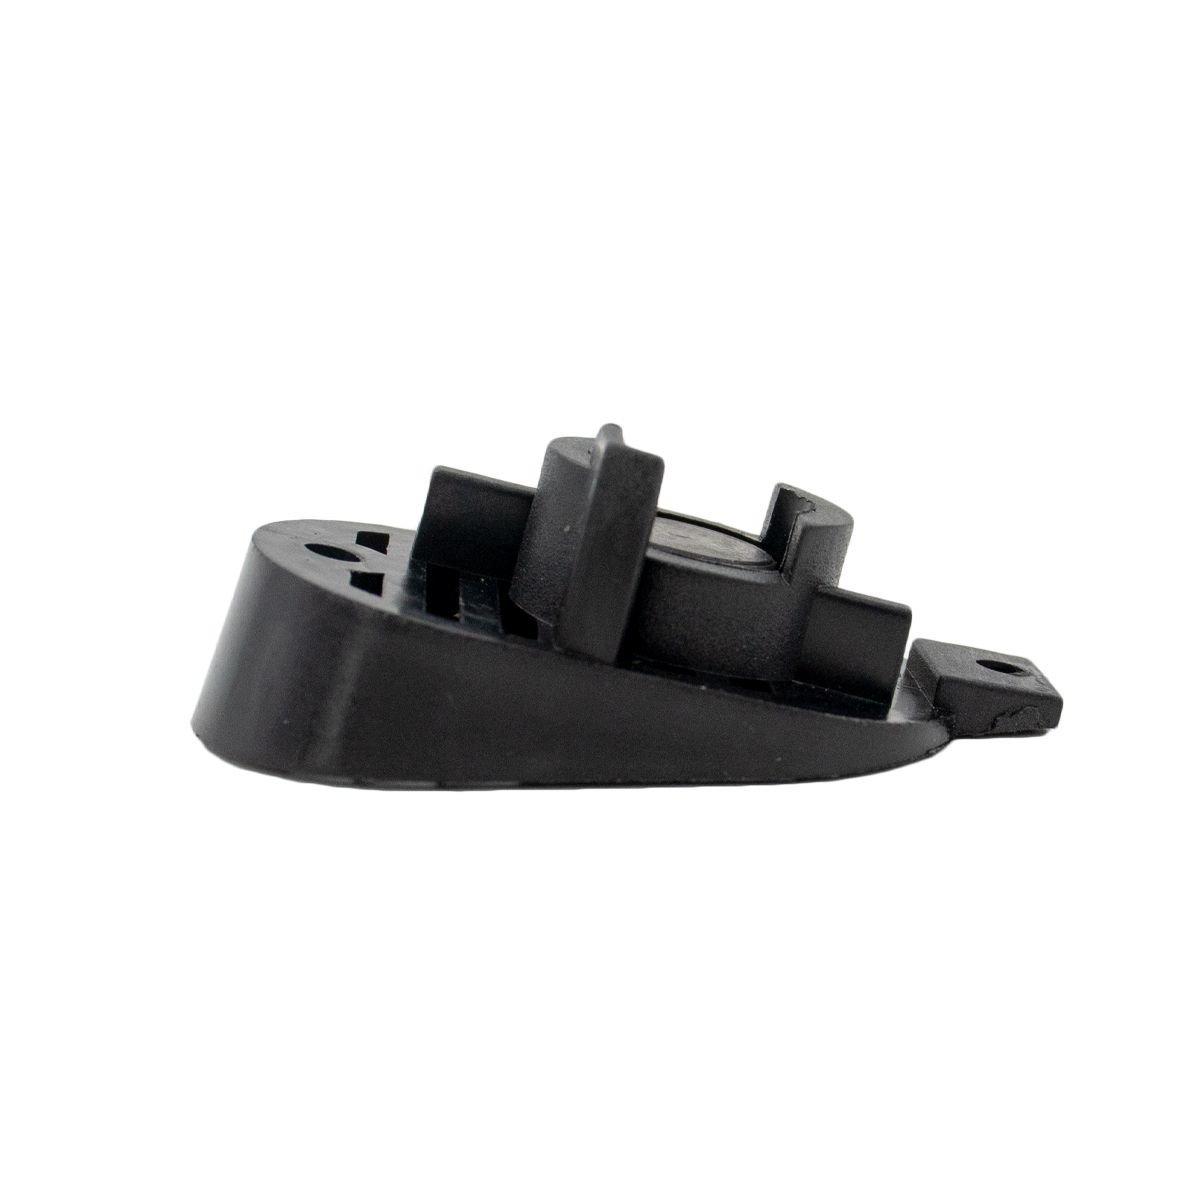 View larger image of Valken Vented Heat Sink Motor Grip Plate Set for Alloy Series Airsoft AEGs